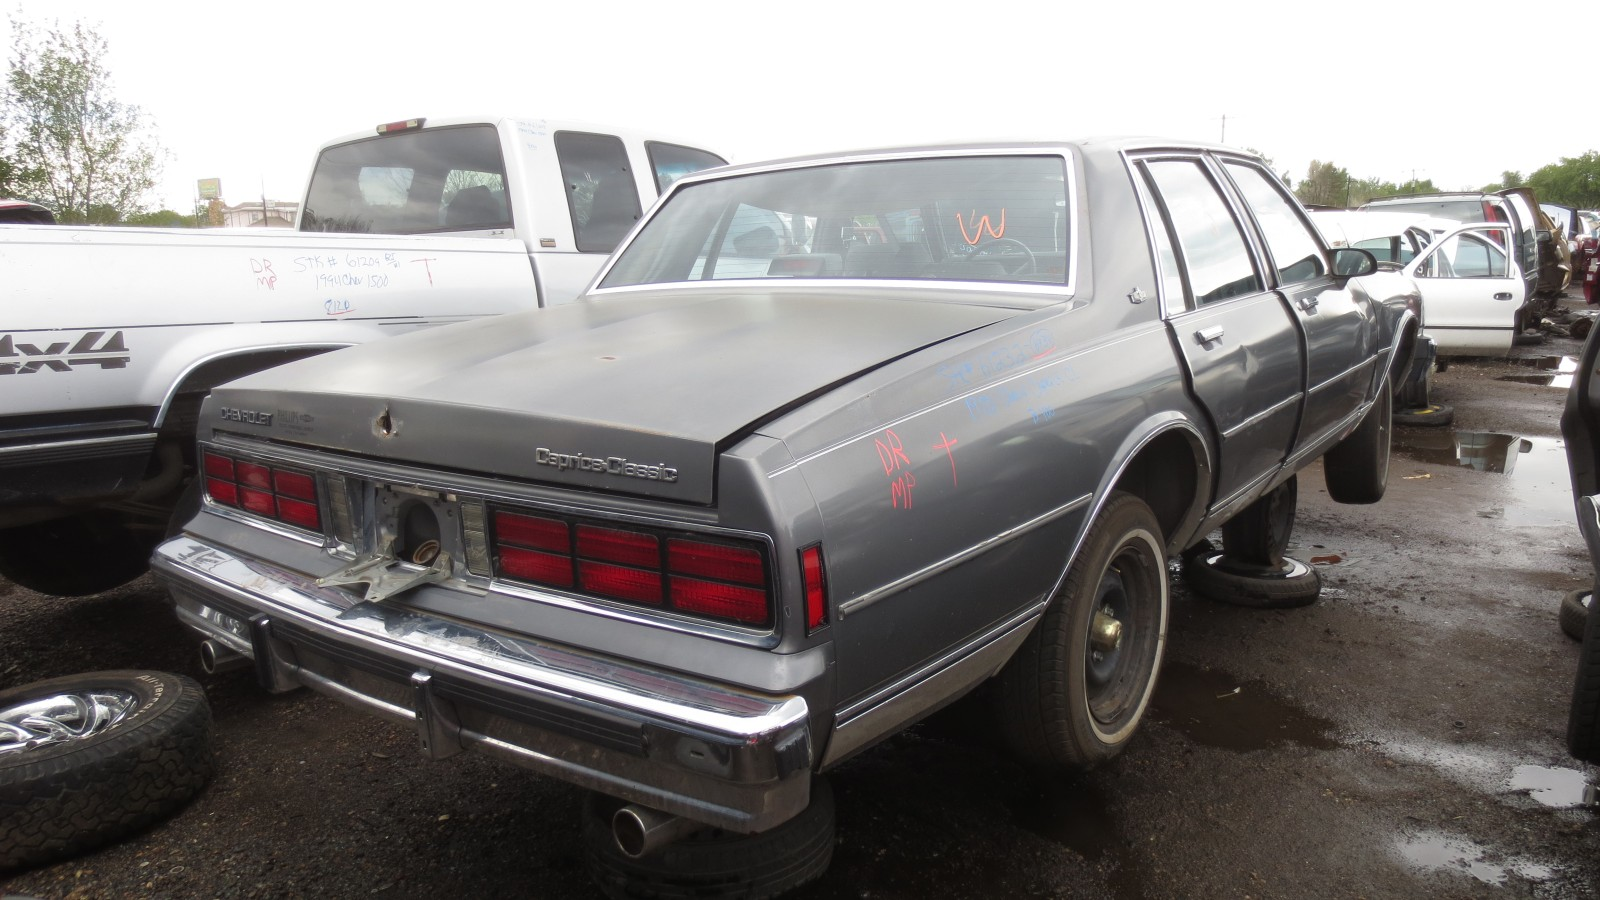 23 1988 chevrolet caprice down on the junkyard picture courtesy of murilee martin